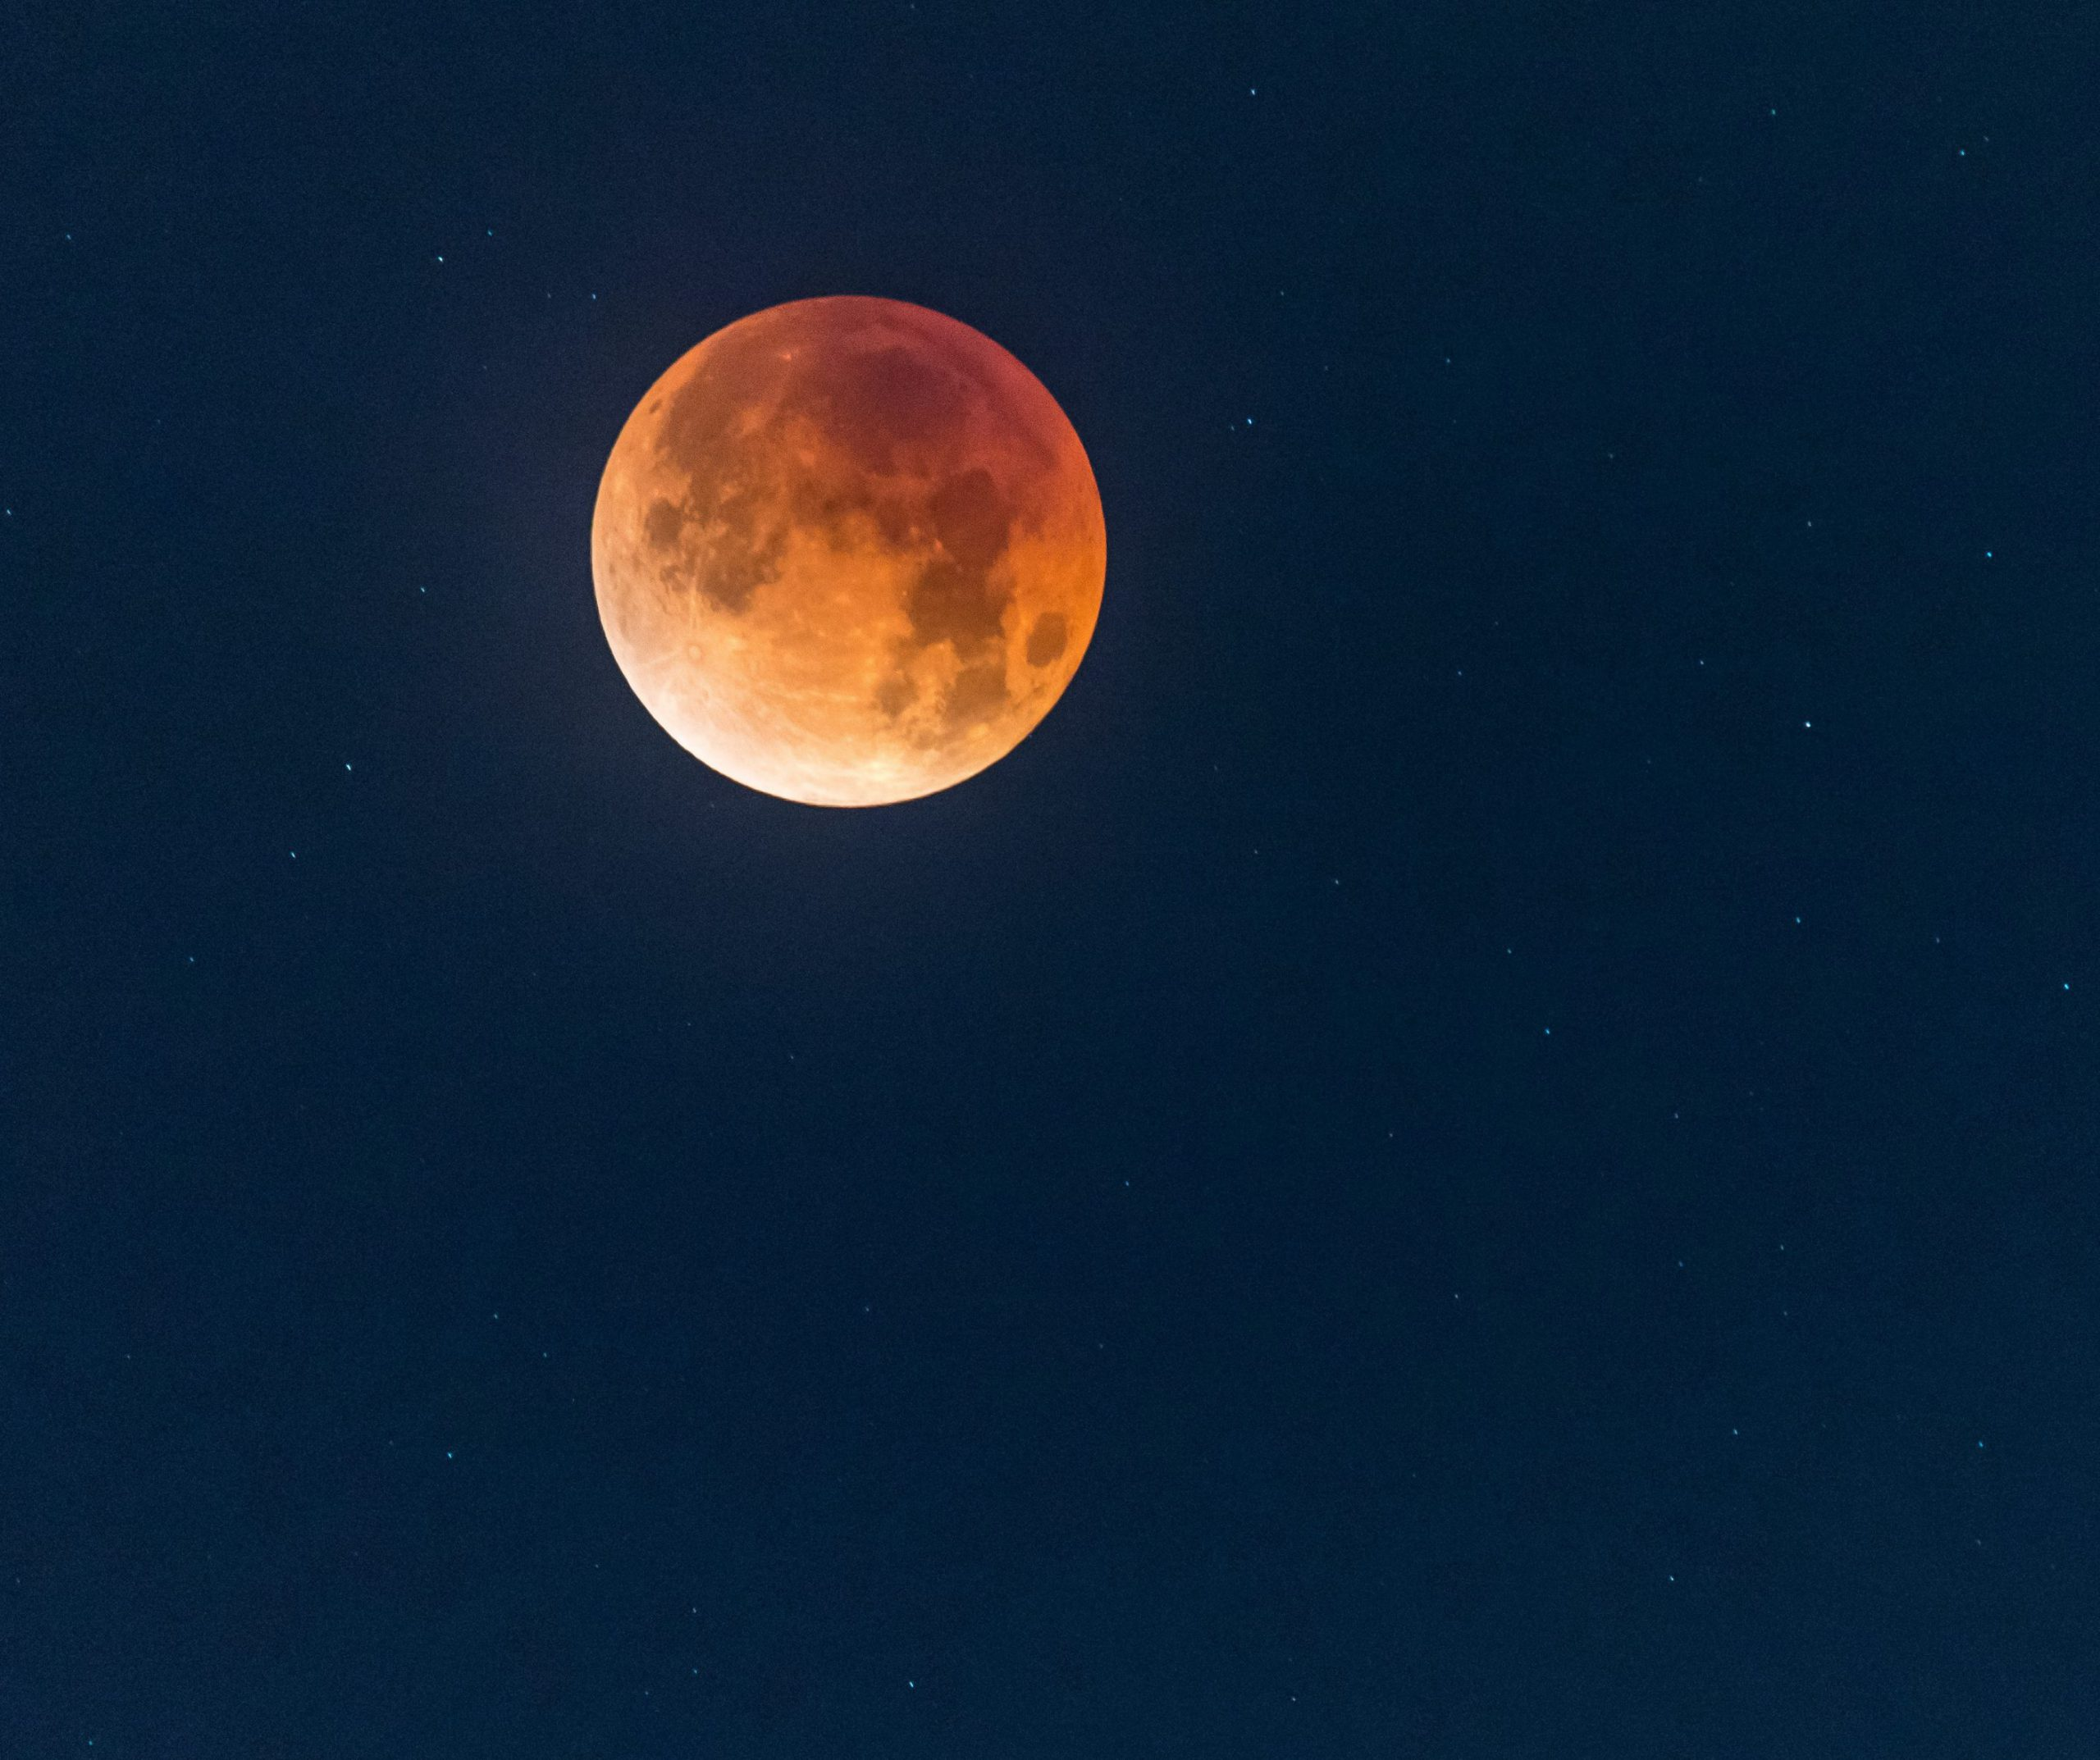 A total lunar eclipse similar to what can be observed on May 26.